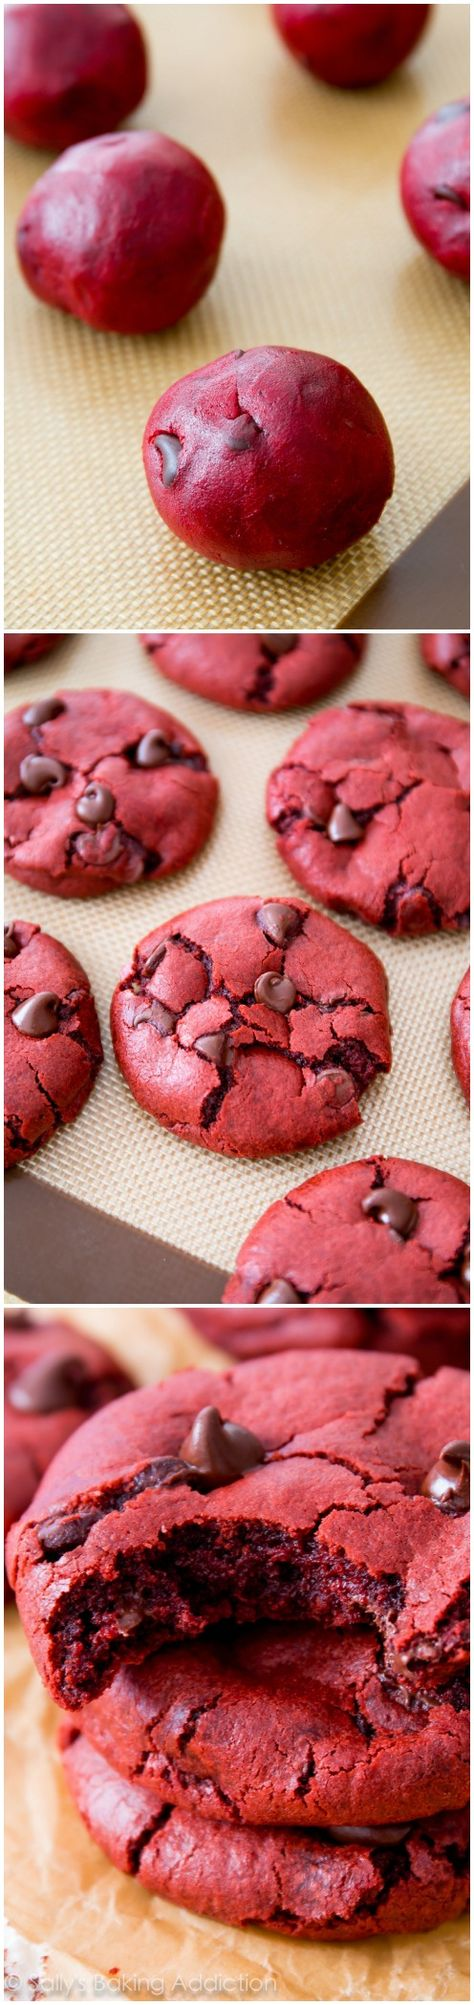 Red Velvet Chocolate Chip Cookies by sallysbaking addiction: Soft-baked red velvet chocolate chip cookie recipe made from scratch! #Cookies #Chocolate_Chip #Red_Velvet